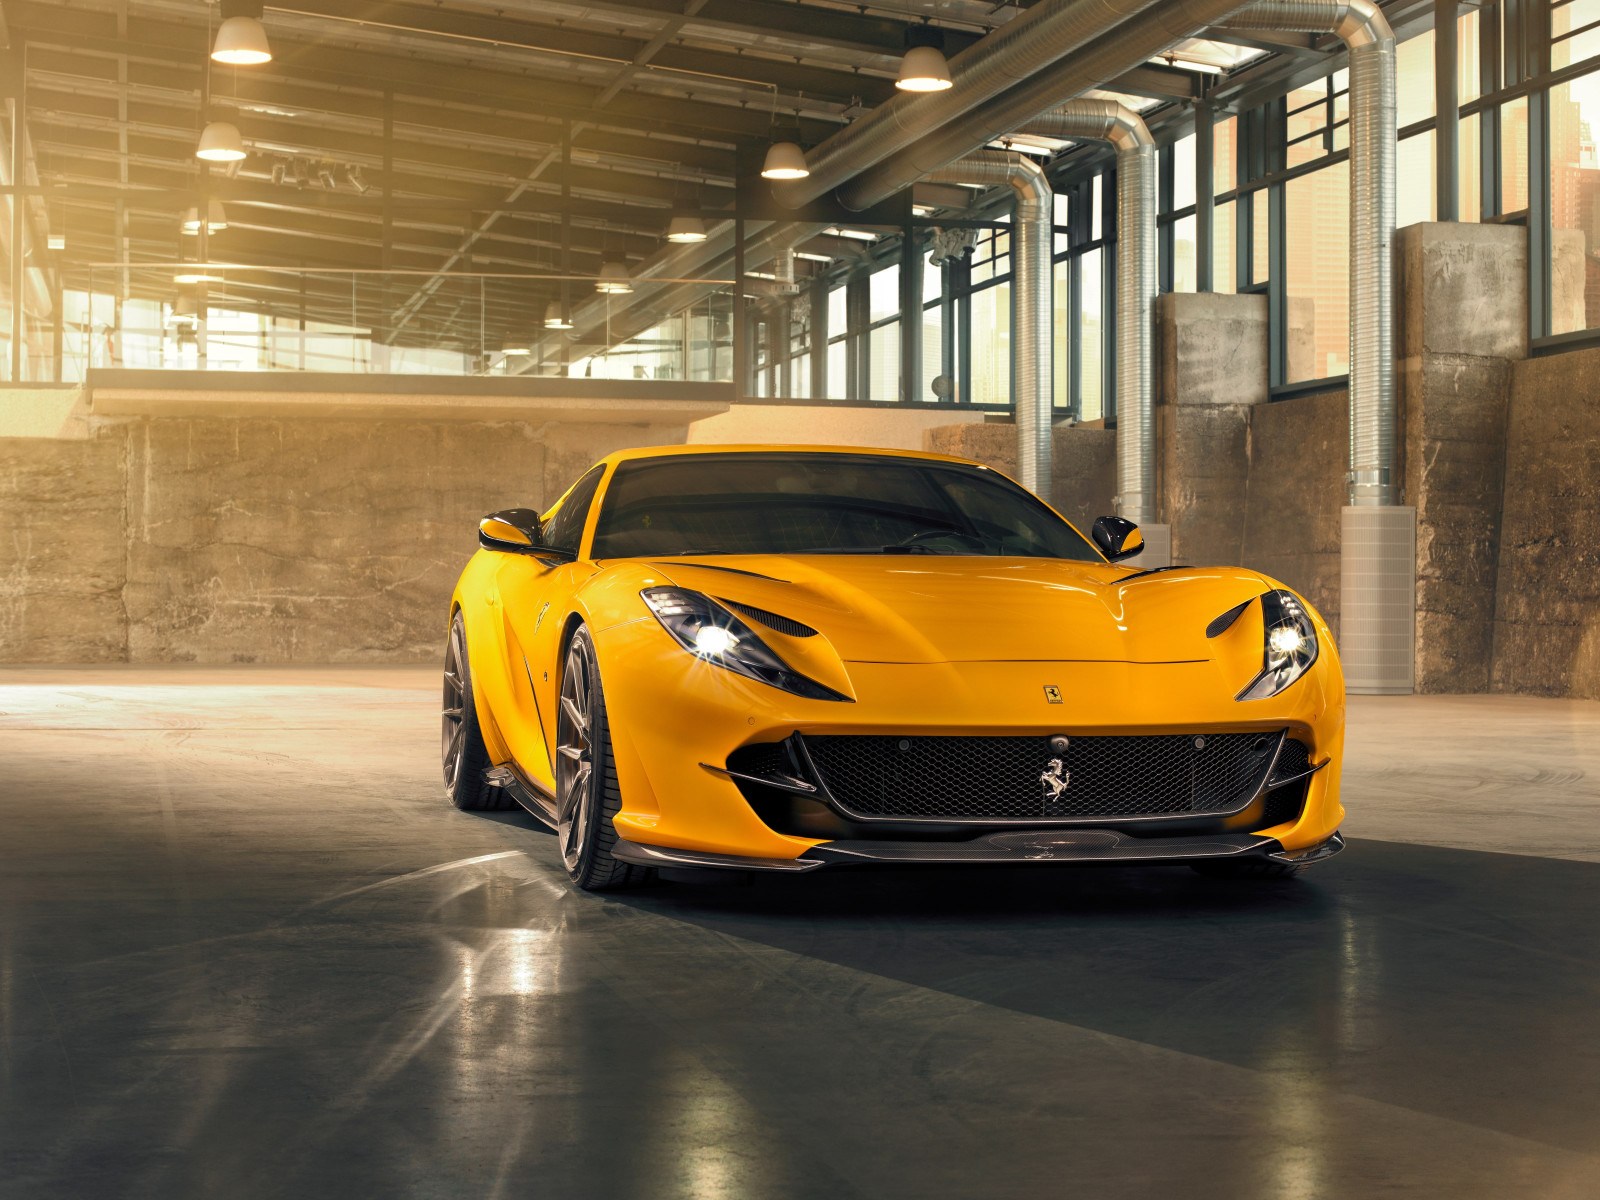 Ferrari 812 Superfast wallpaper 1600x1200